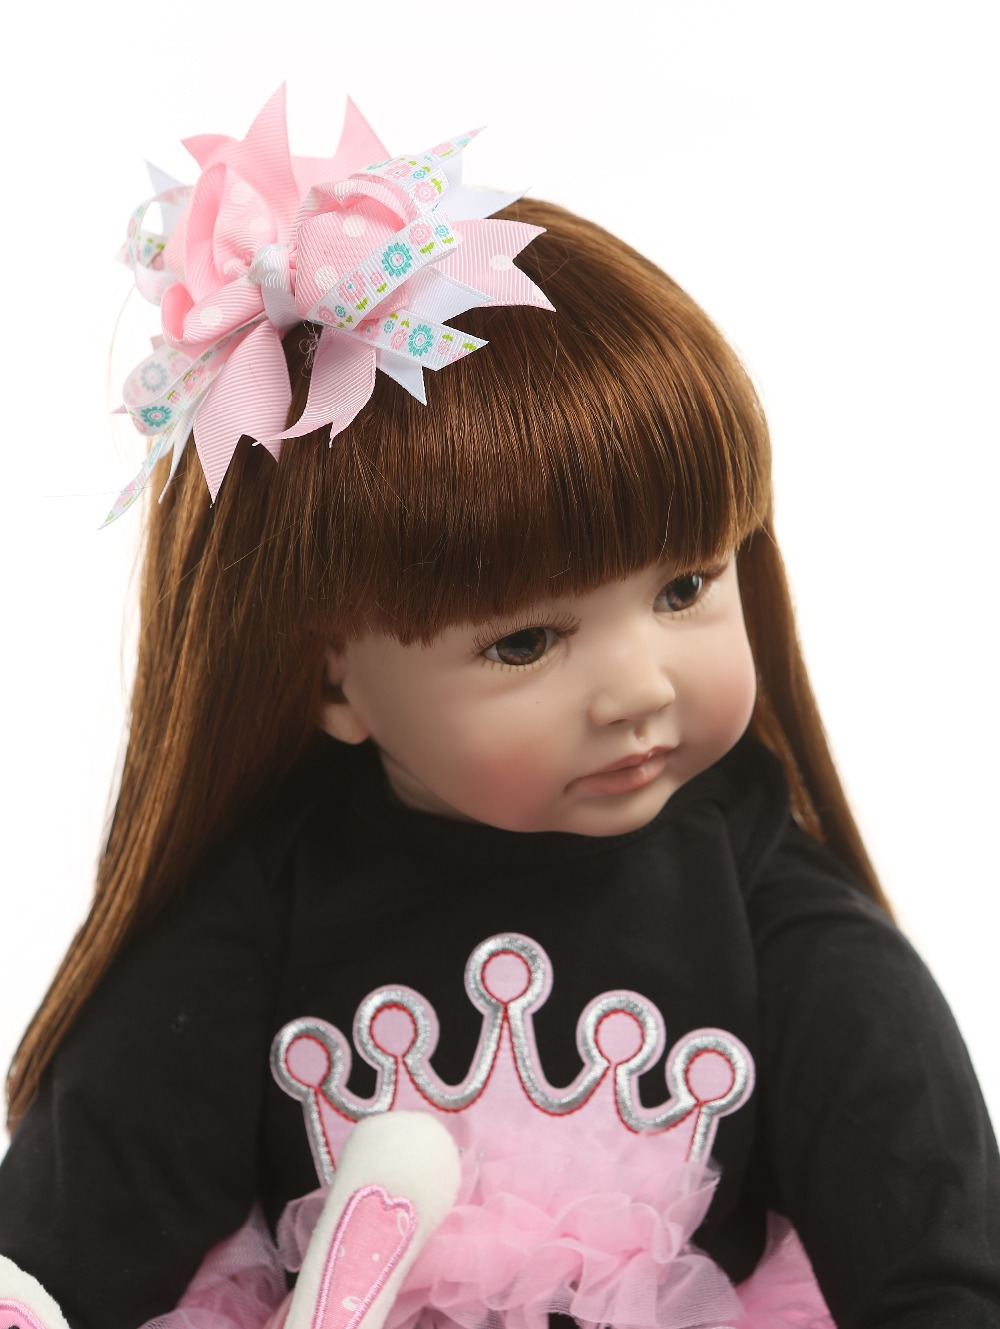 NPK 60cm Reborn Toddler Princess Handmade Doll Adorable Lifelike Baby Bonecas Girl Kid Bebe Doll With